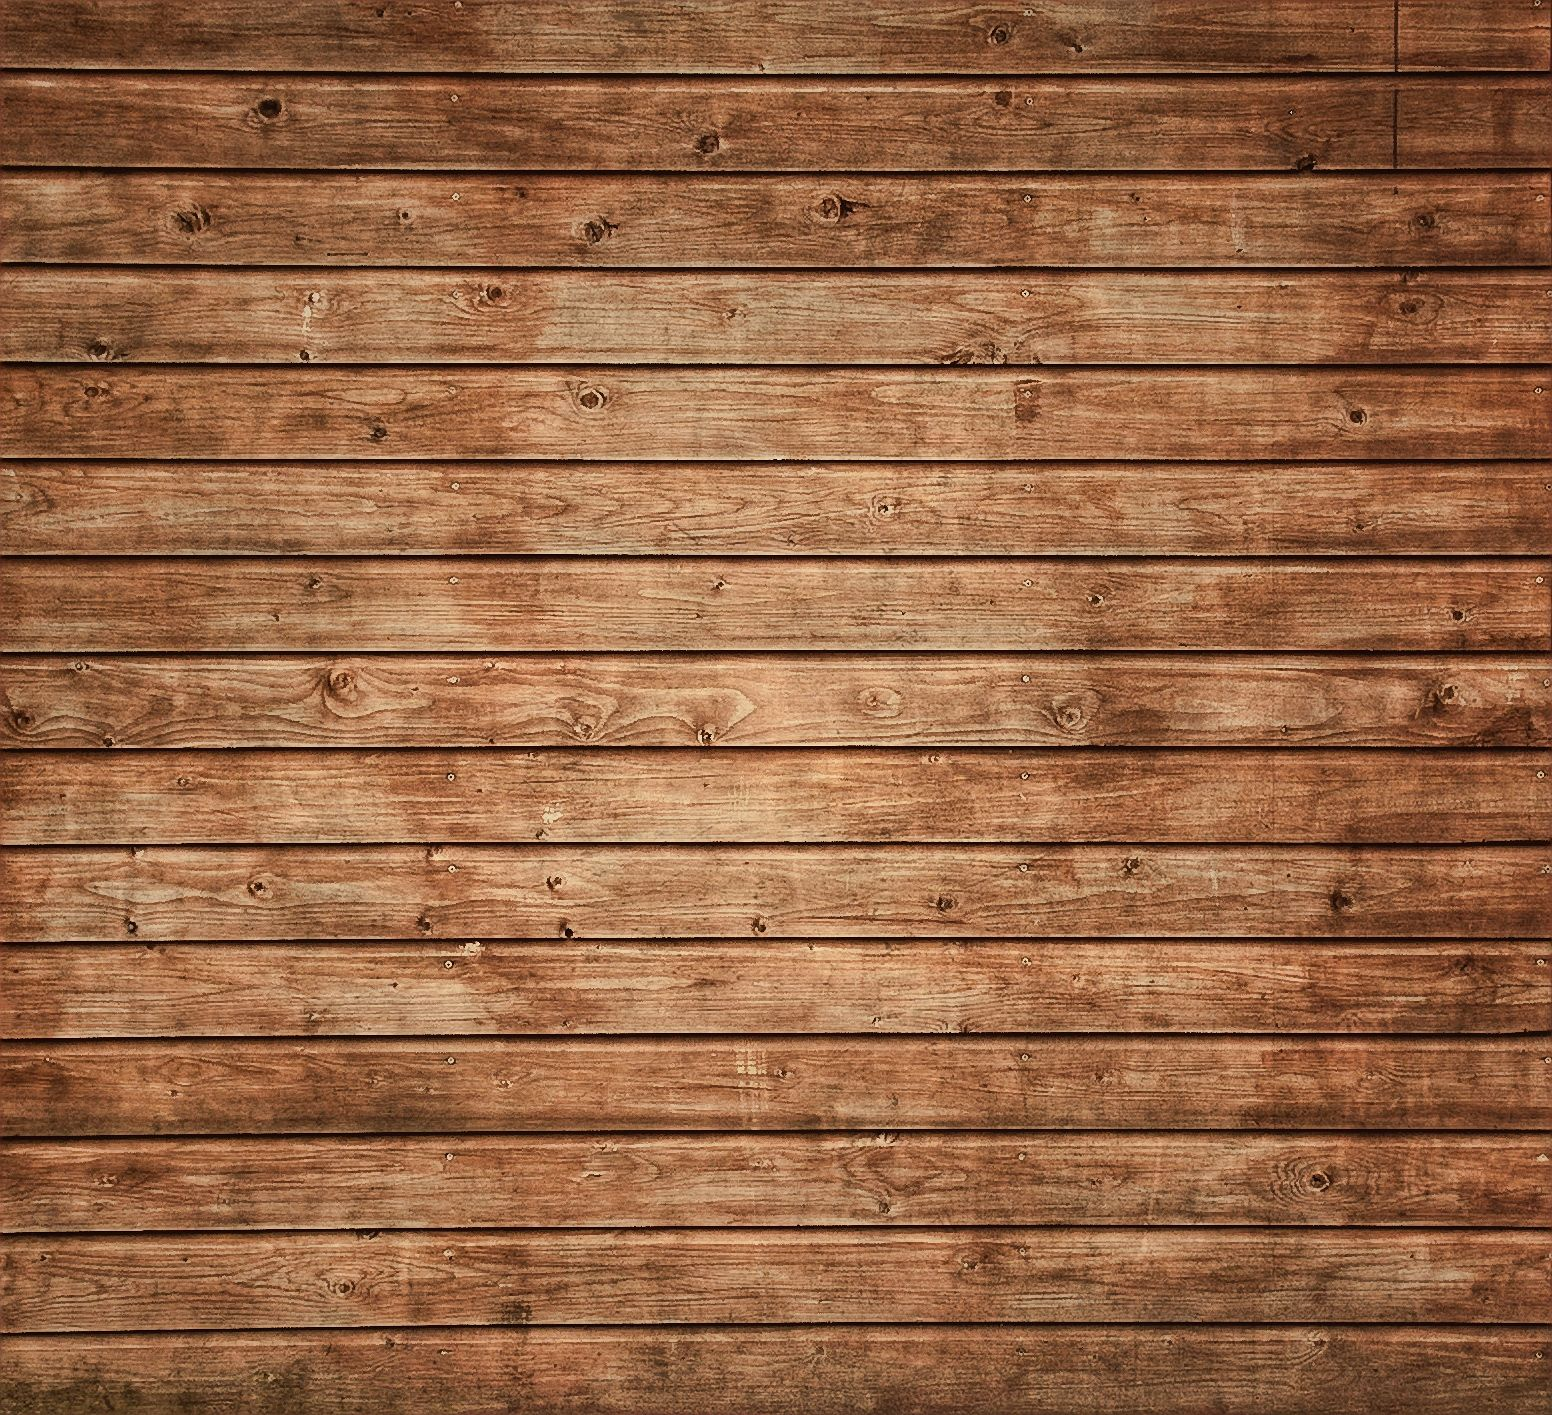 Textures Wallpapers Free Wood Texture Grunge First Baptist